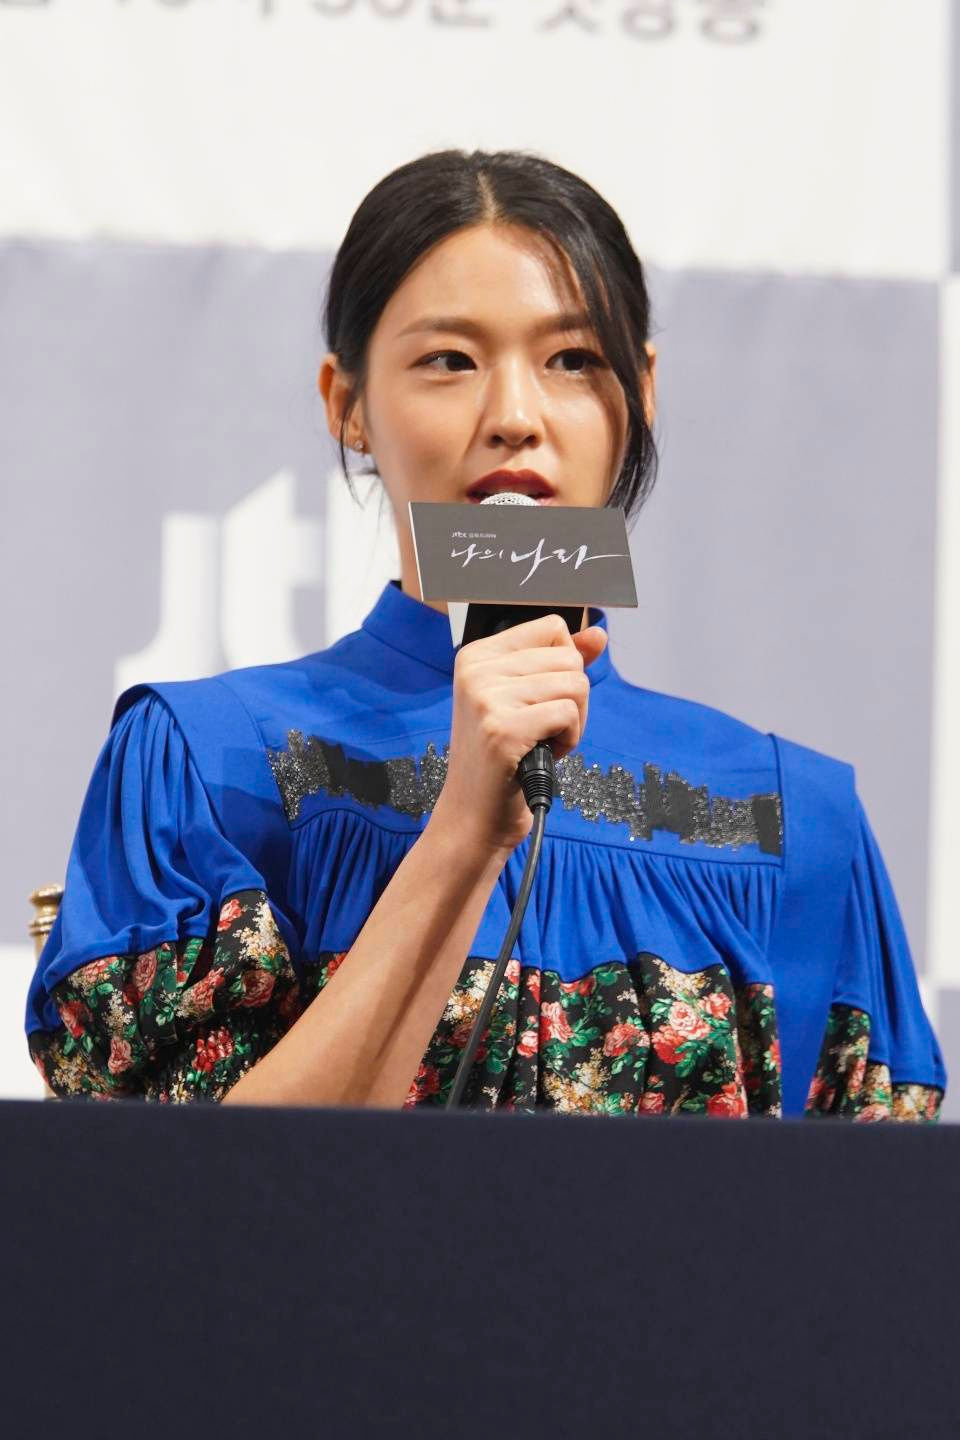 Seol Hyun at the My Country press conference